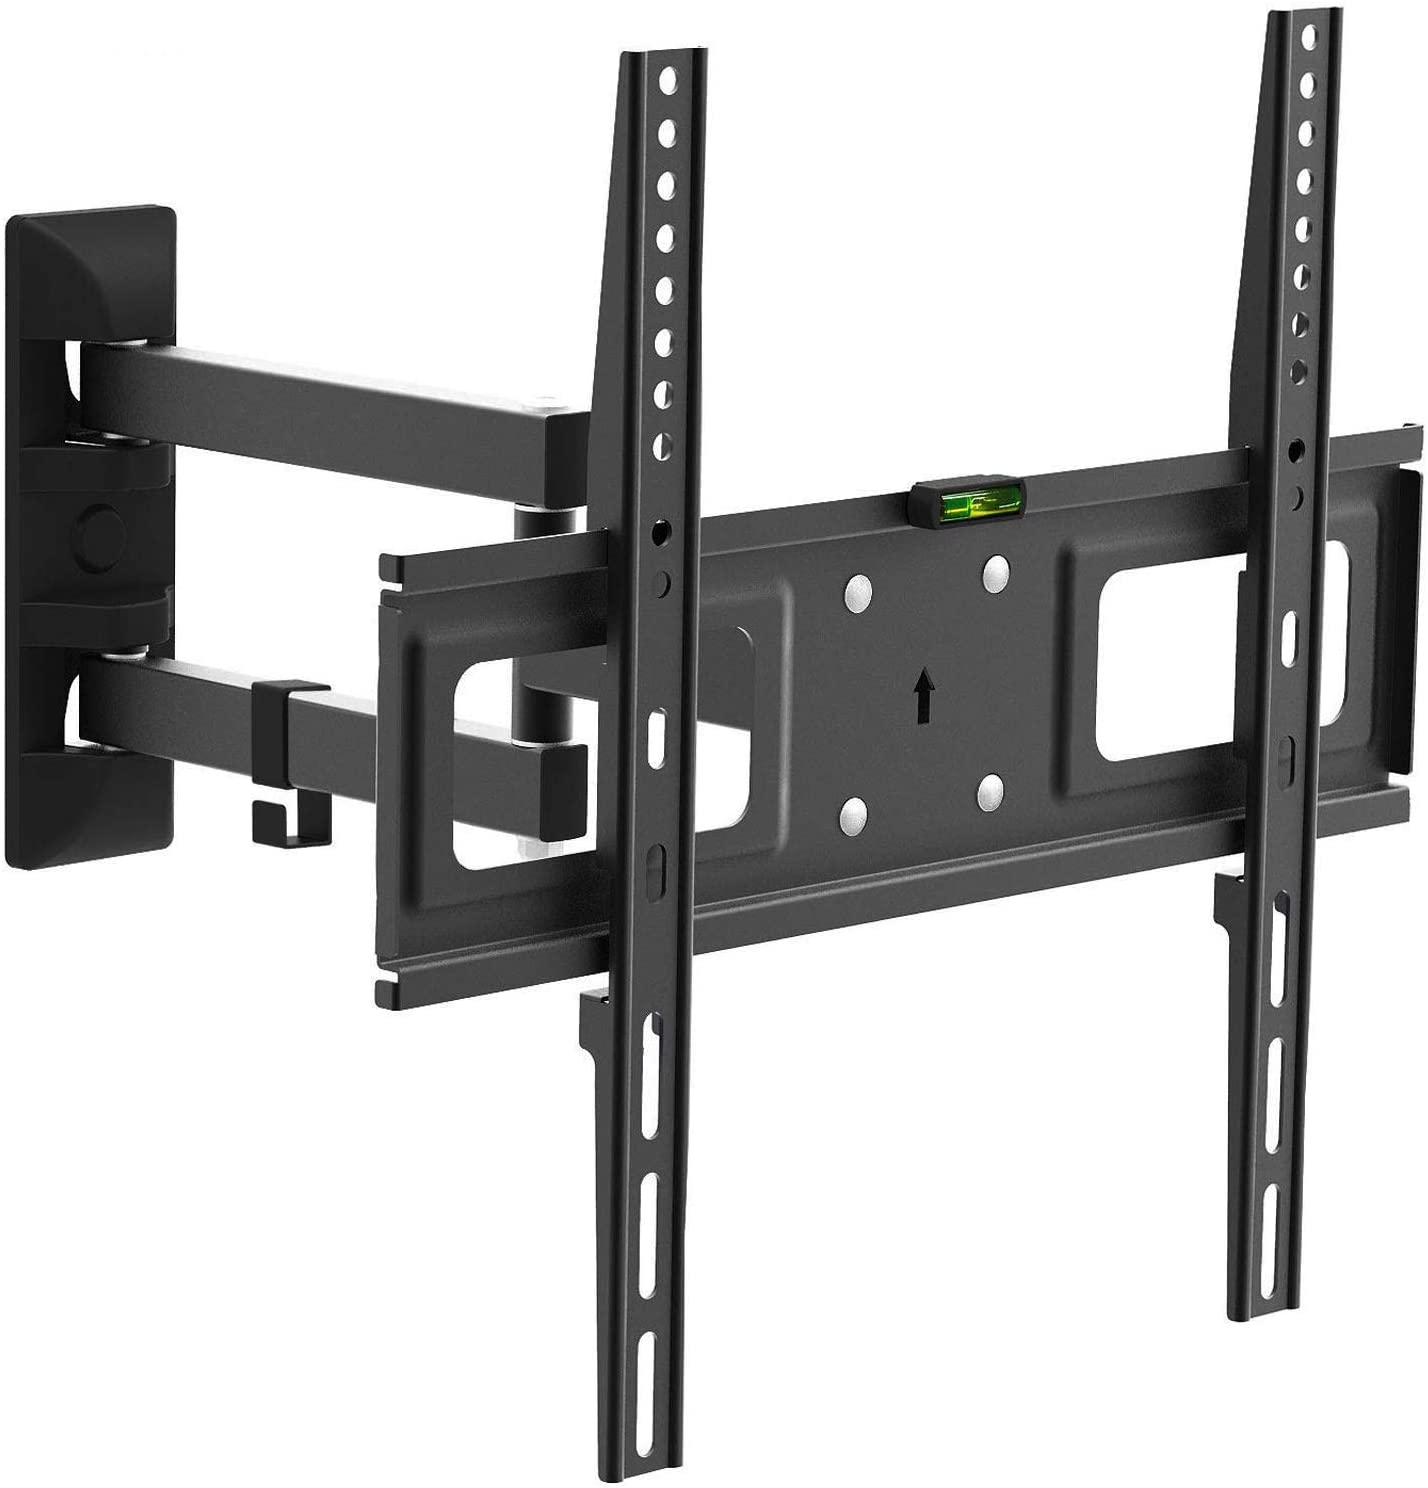 Charmount Tv Mounts Wall Full Motion Swivel Corner Tv Mount 26 55 Inch With Max Vesa 400x400 Up To 88 Lbs Articulating Arm Tilting Tv Bracket Wall Mount Support Tv Mural Amazon Ca Electronics